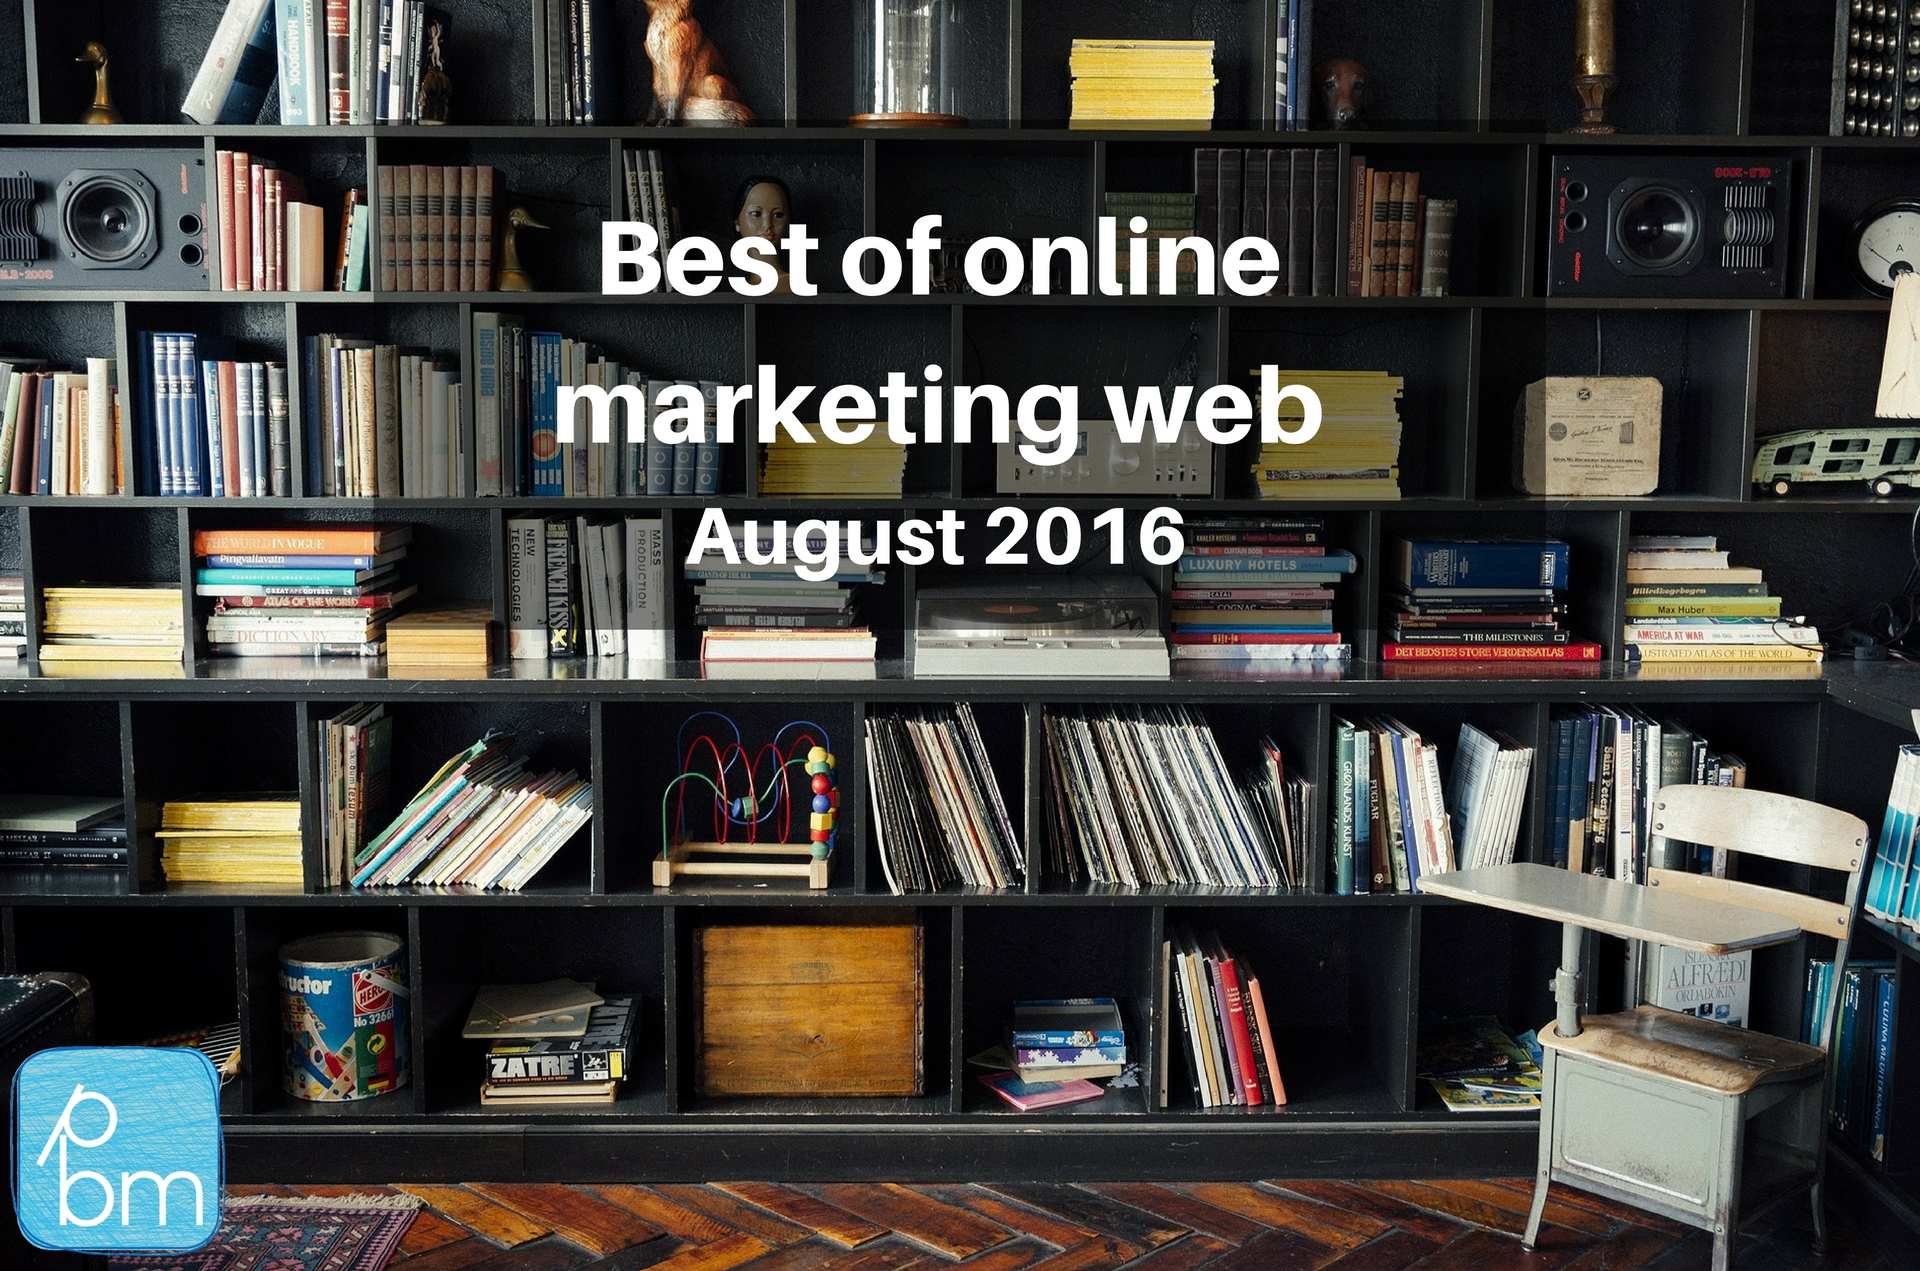 Best of the online marketing web August 2016